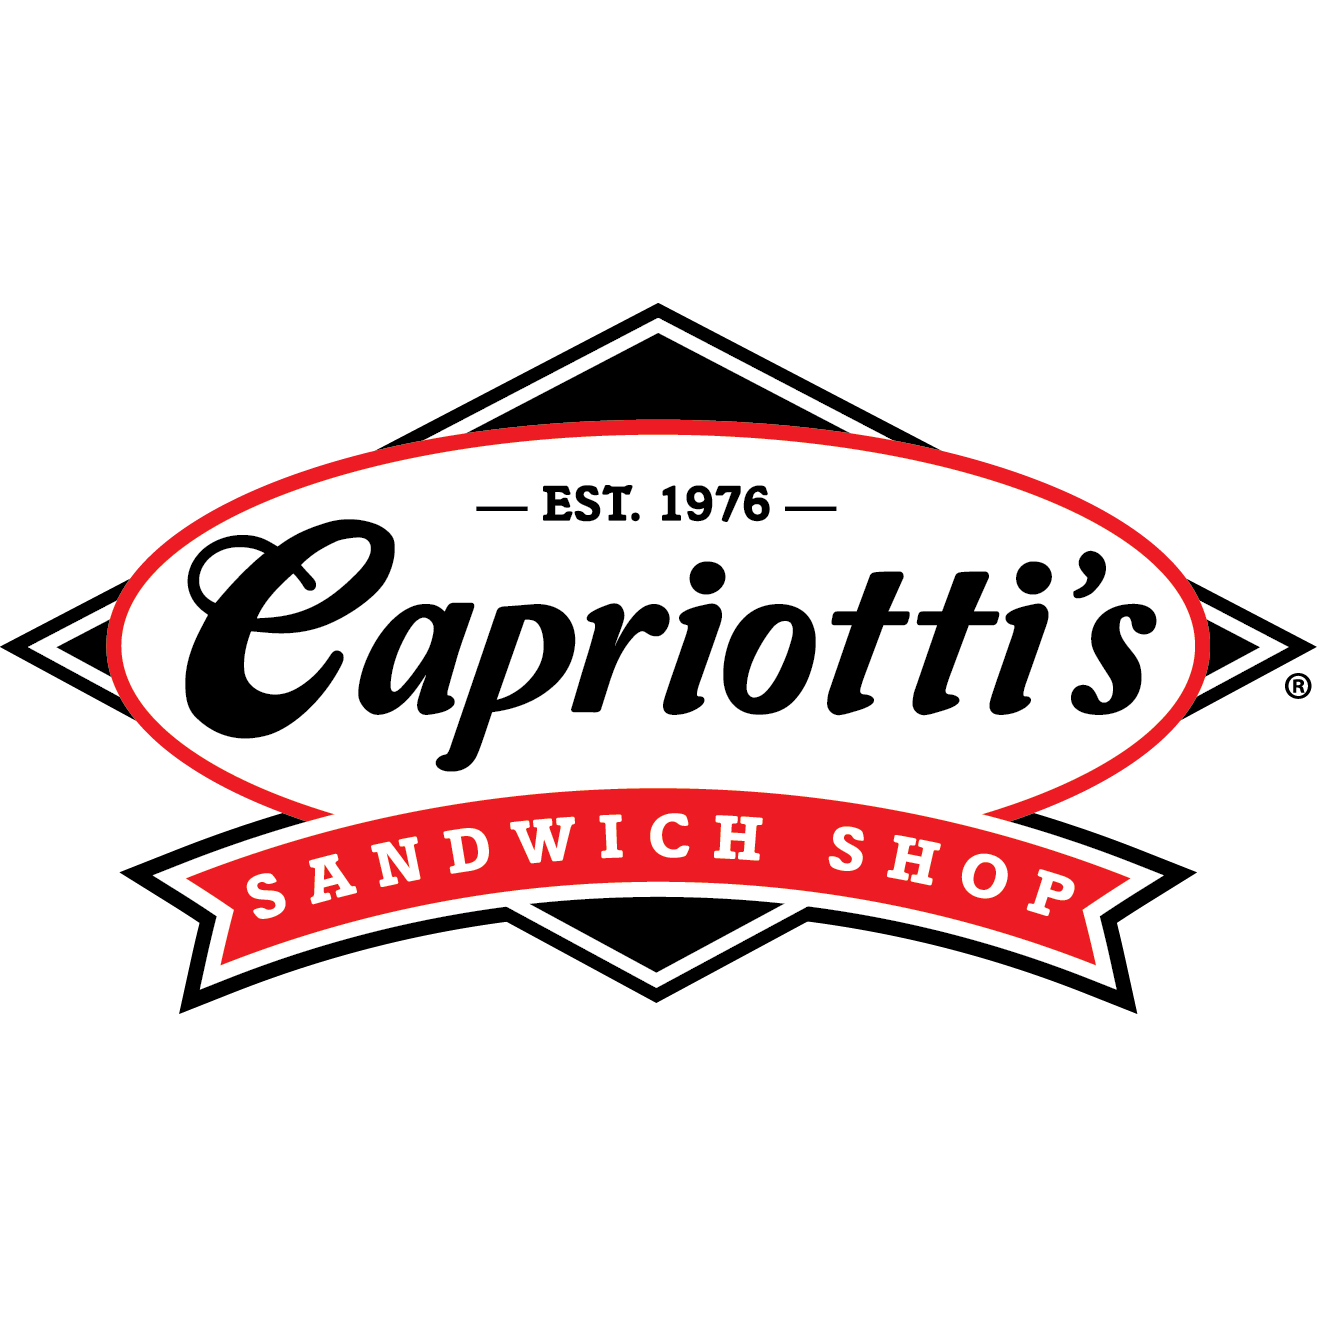 Capriottis coupon code